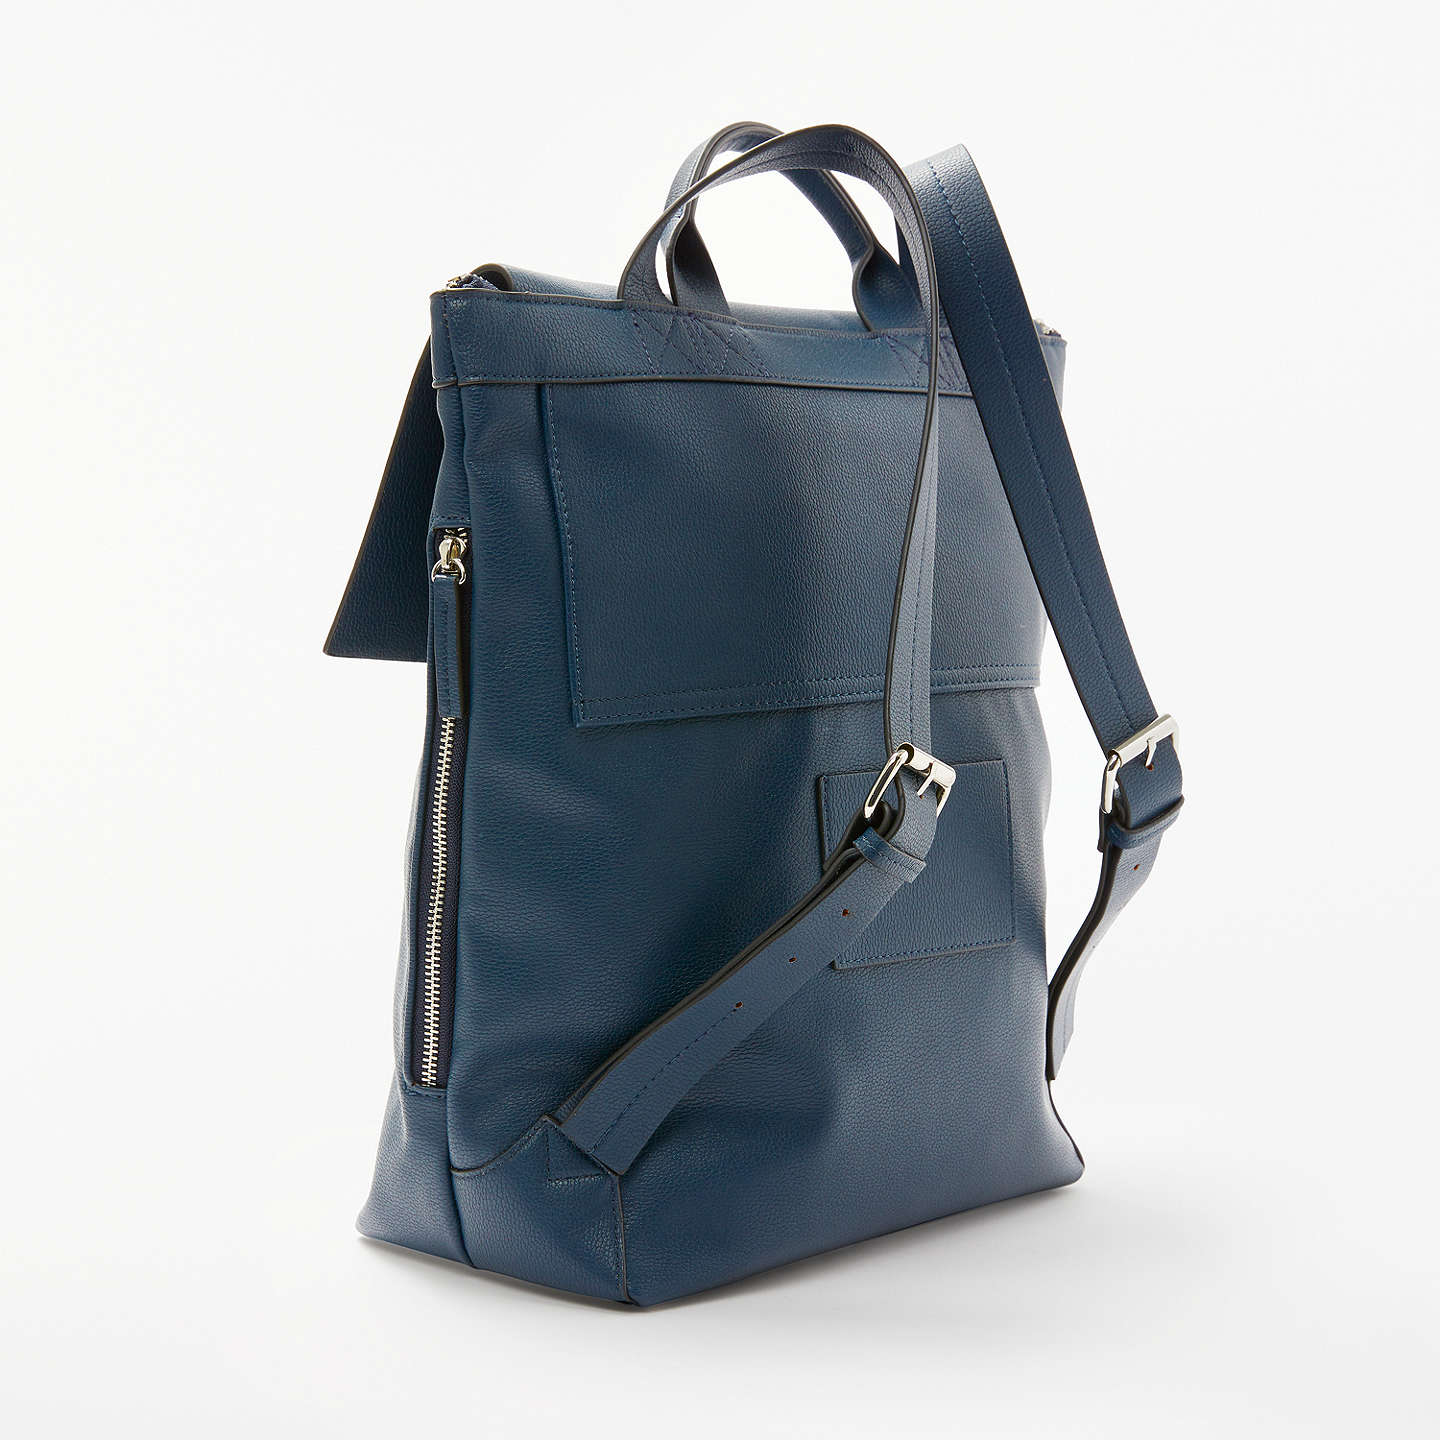 BuyKin by John Lewis Sia Foldover Backpack, Navy Online at johnlewis.com